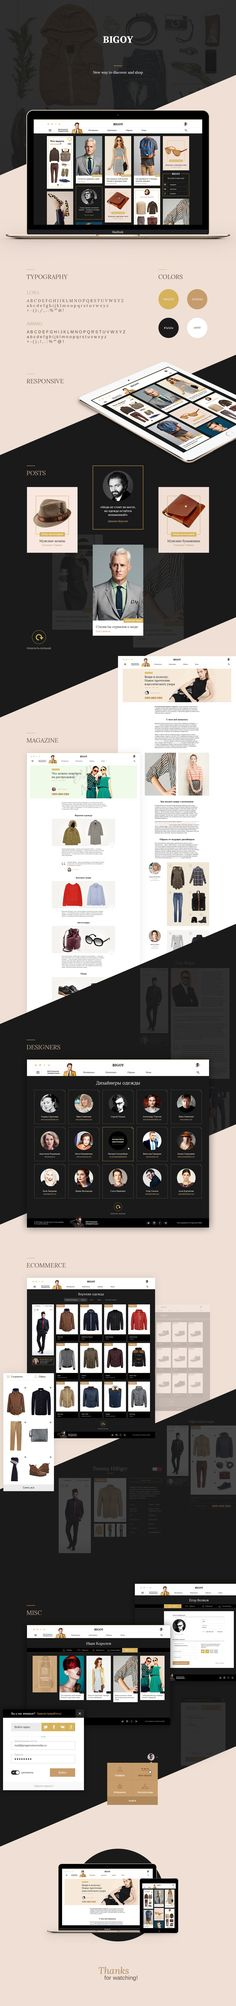 New way to discover and shop. https://www.behance.net/gallery/31628831/Bigoy-New-way-to-discover-and-shop